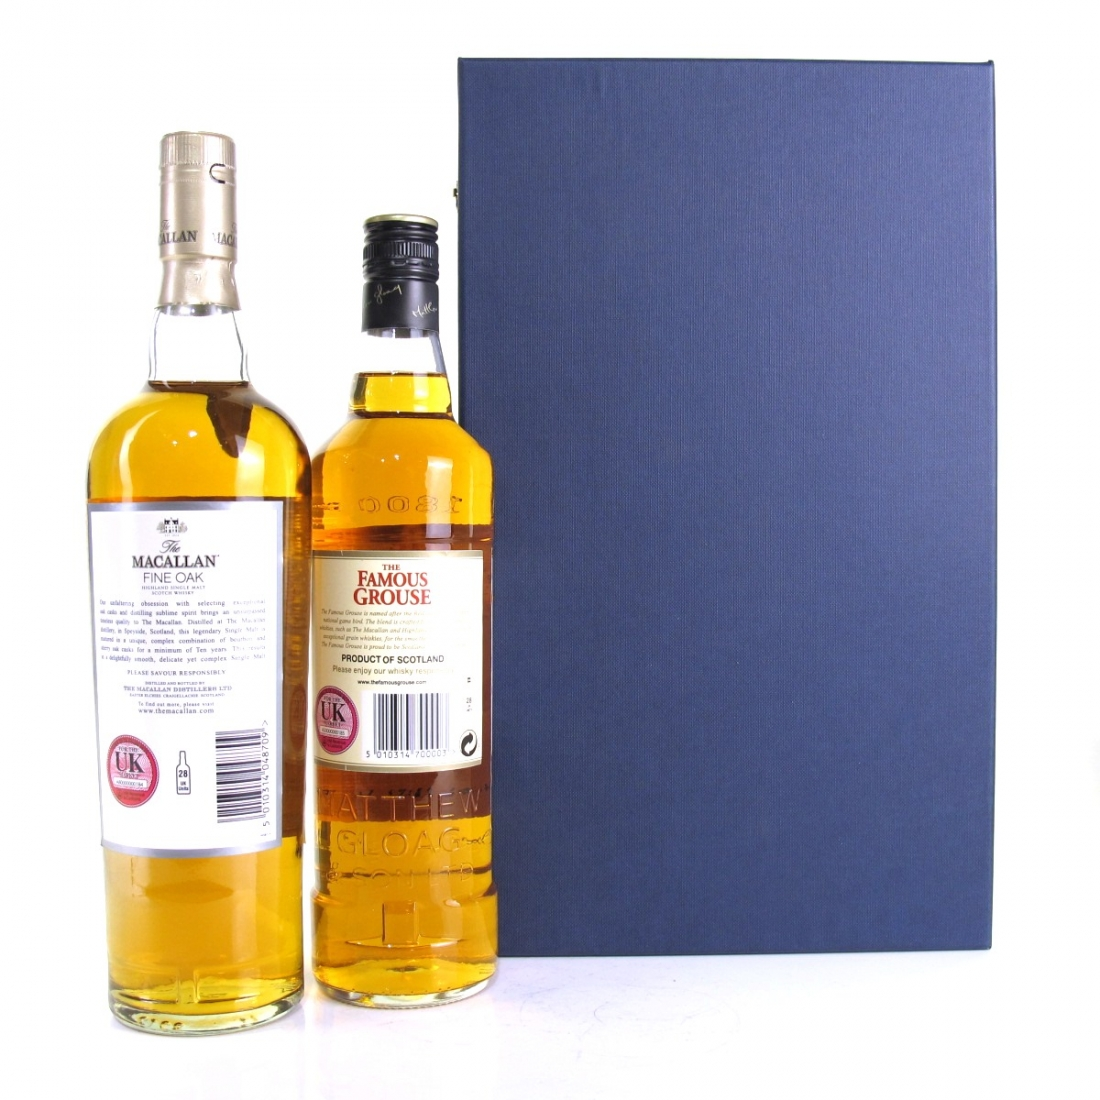 Macallan 10 Year Old Fine Oak and Famous Grouse / Staff Gift Pack